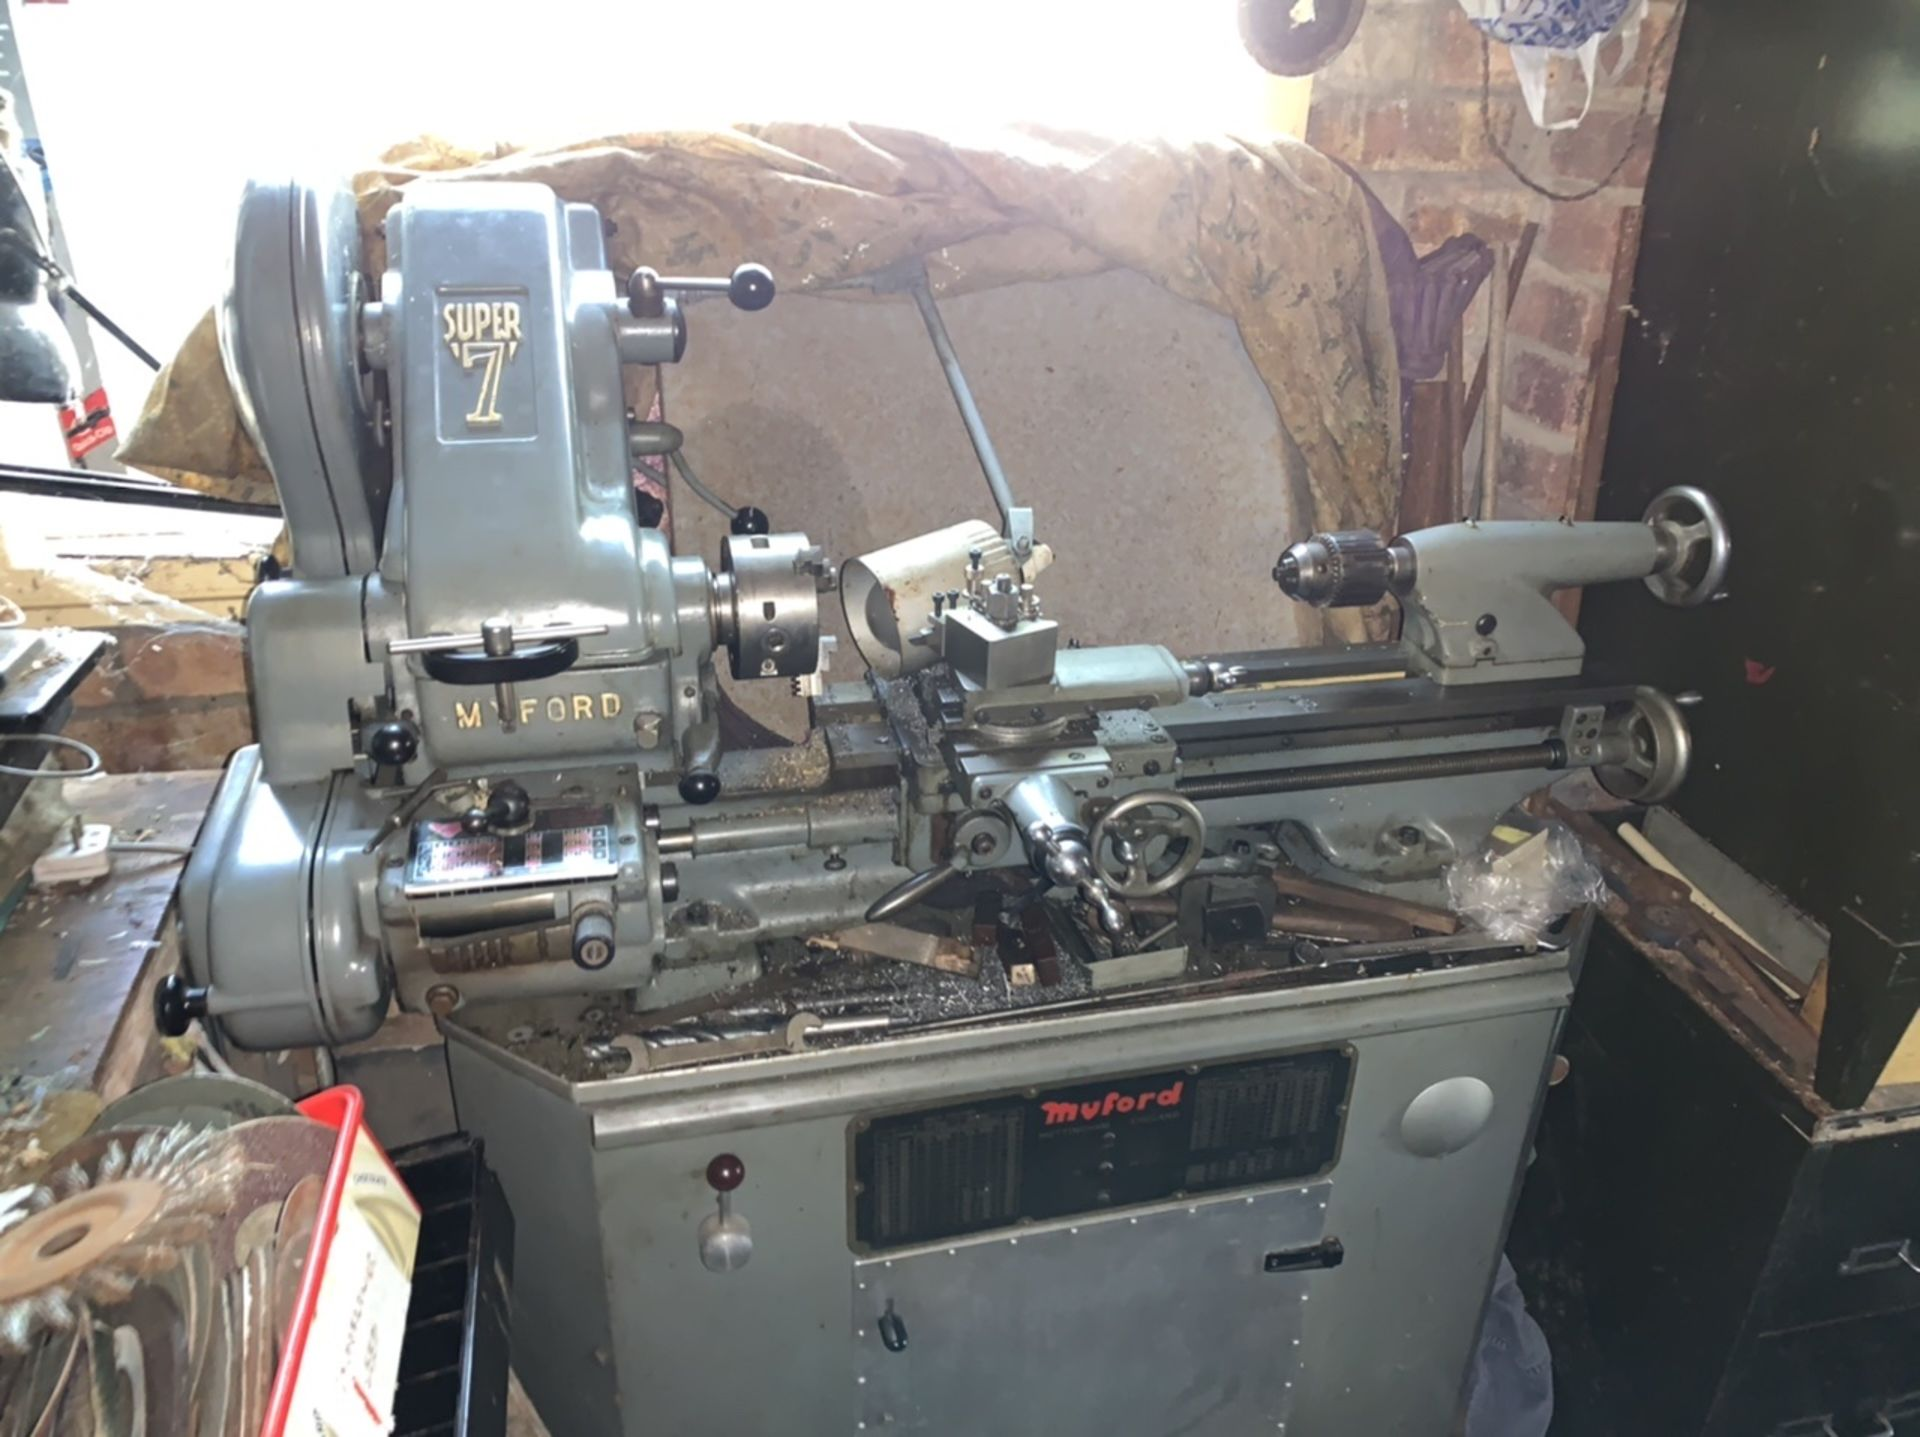 Lot 38 - Myford Super 7 lathe. PAT test failed - needs to be reflexed.